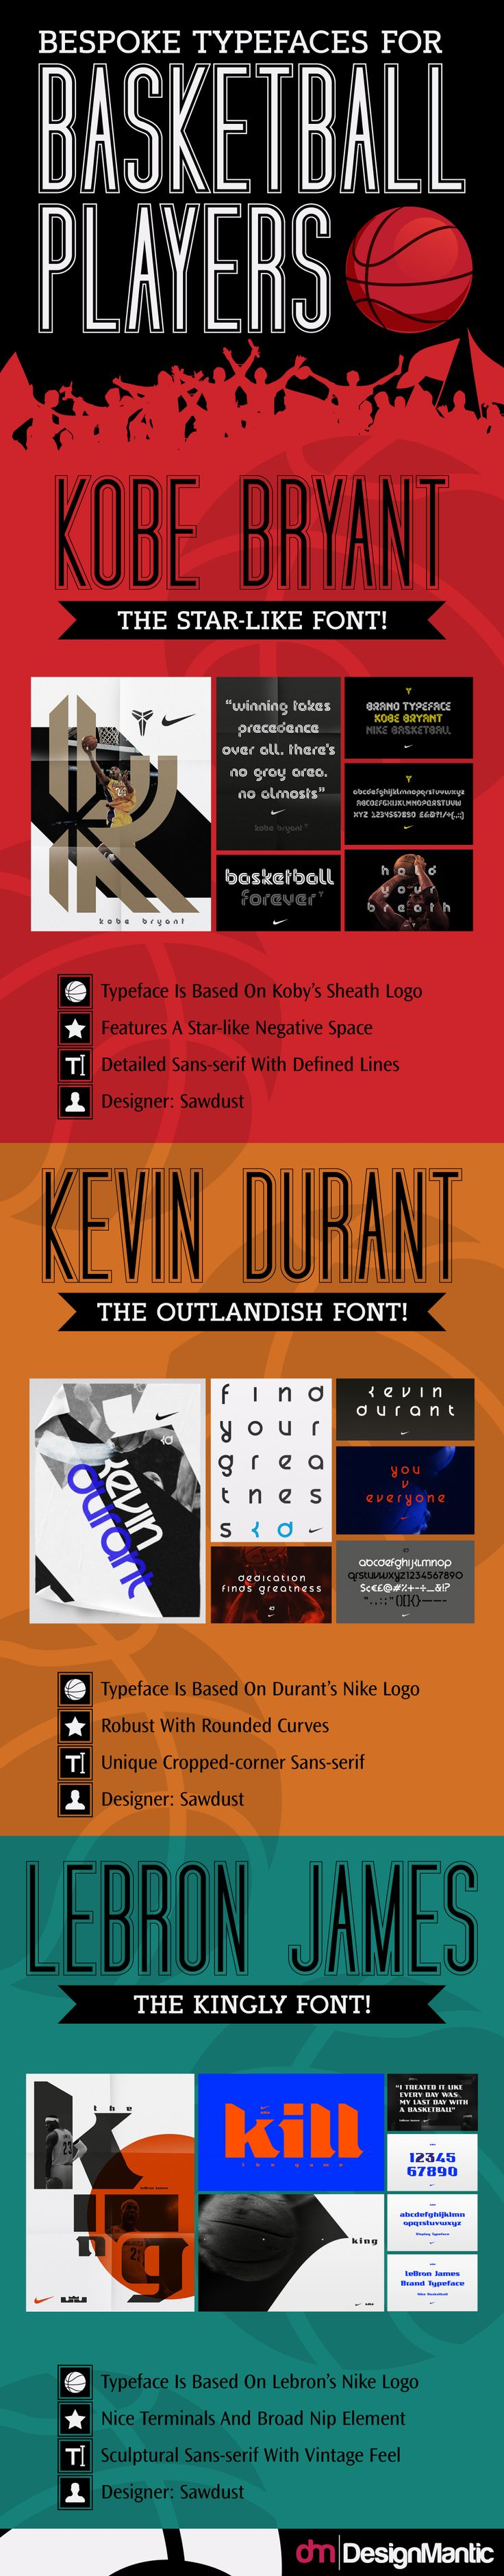 best books worth reading images on pinterest basketball players